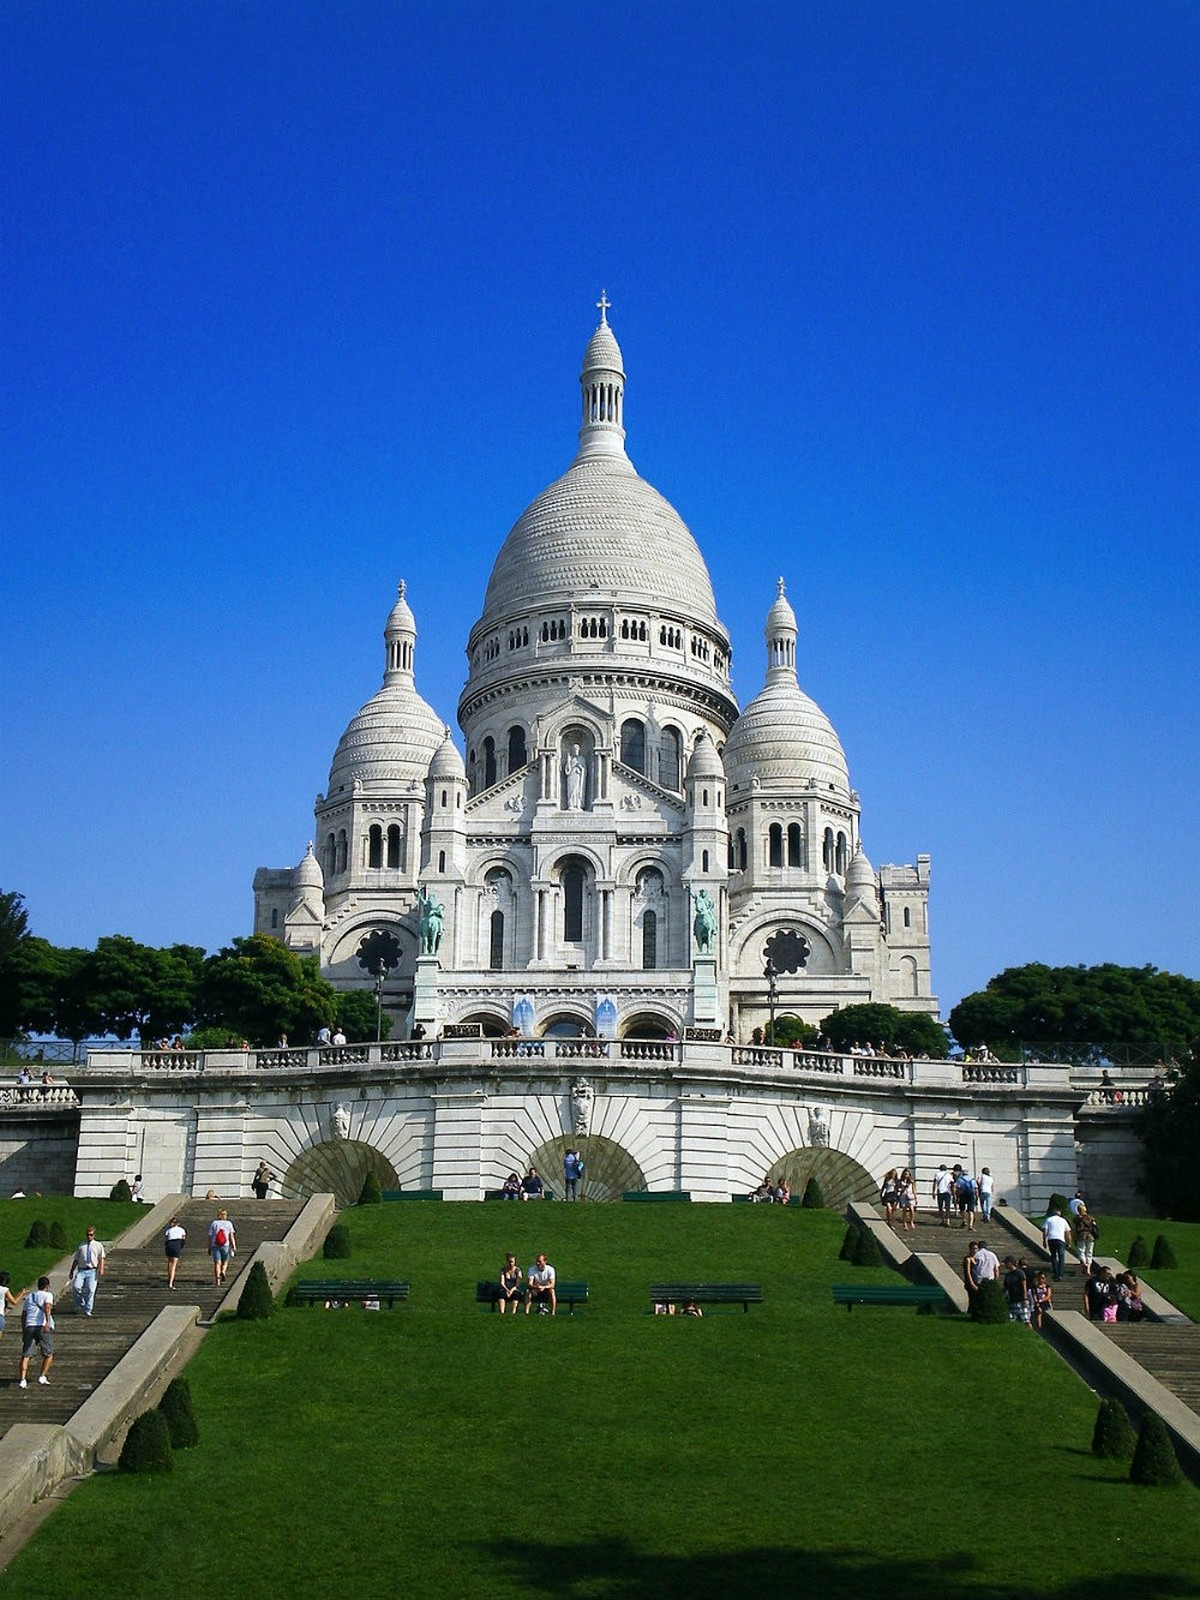 Visit Paris Like a Pro During M&O By Going To This Iconic Places  Visit Paris Like a Pro During M&O By Going To This Iconic Places Visit Paris Like a Pro During MO By Going To This Iconic Places 9